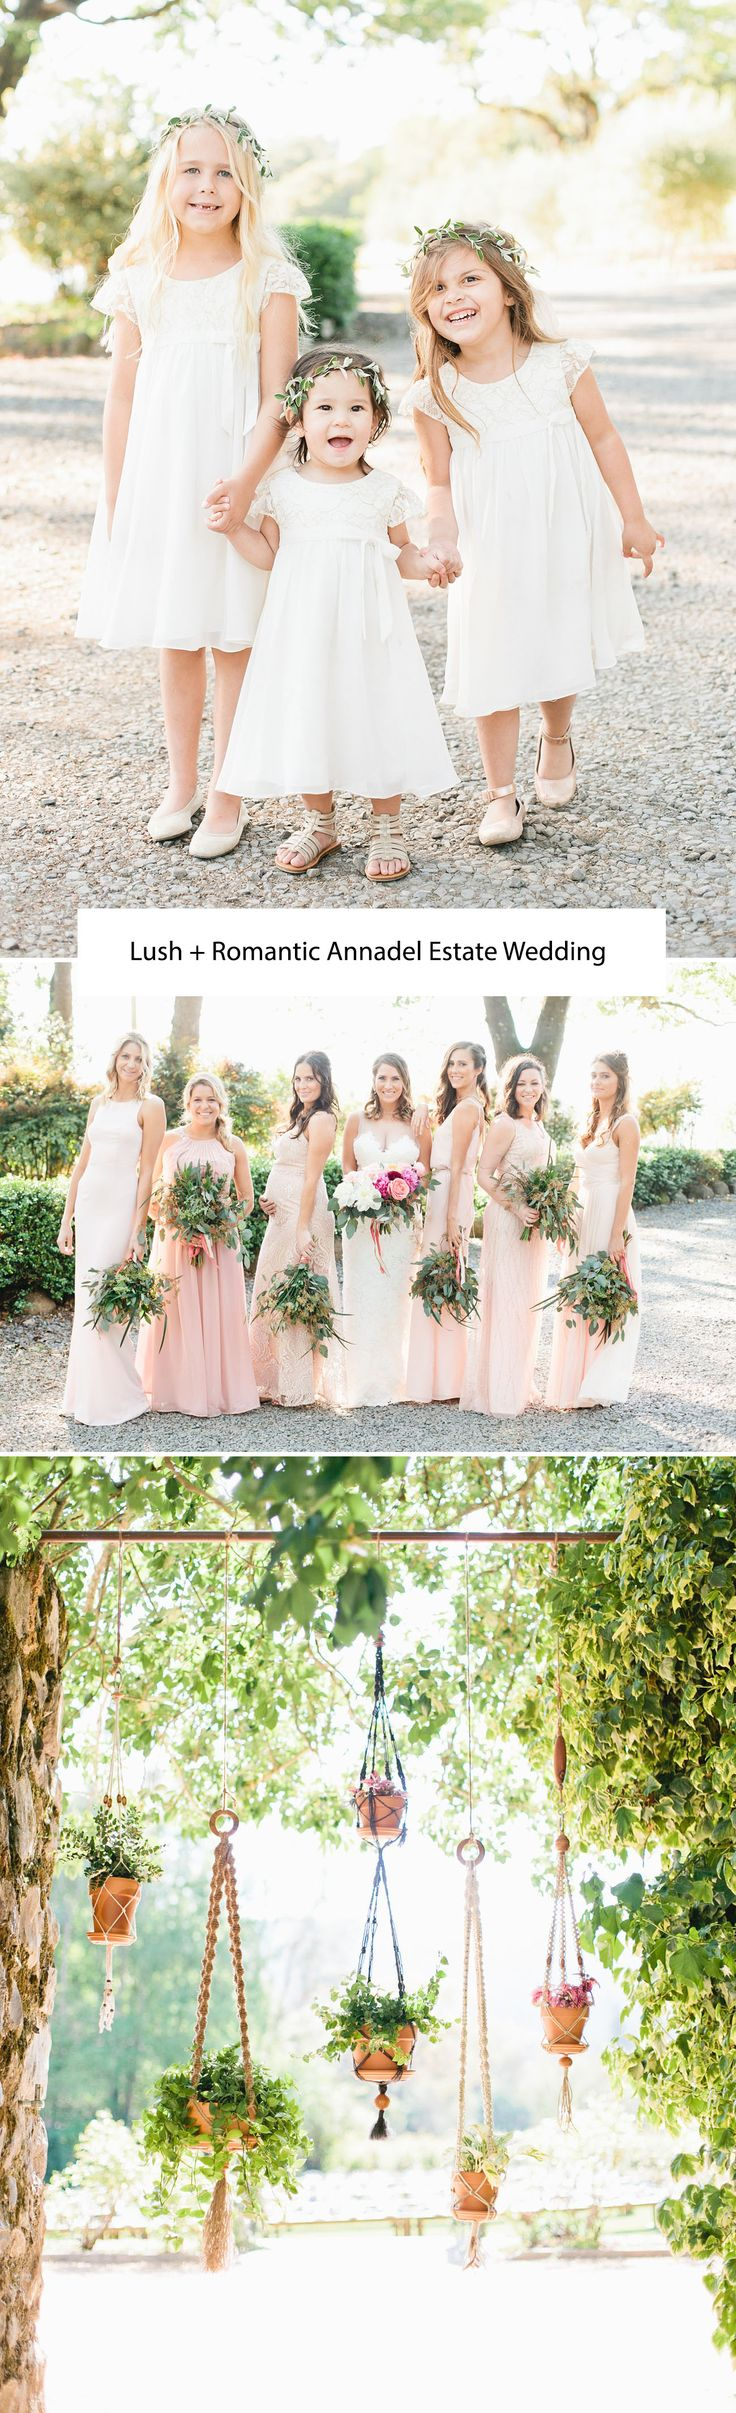 69 best wedding i bridesmaids images on pinterest bridesmaids lush romantic annadel estate wedding arent these flower girls the cutest ombrellifo Image collections